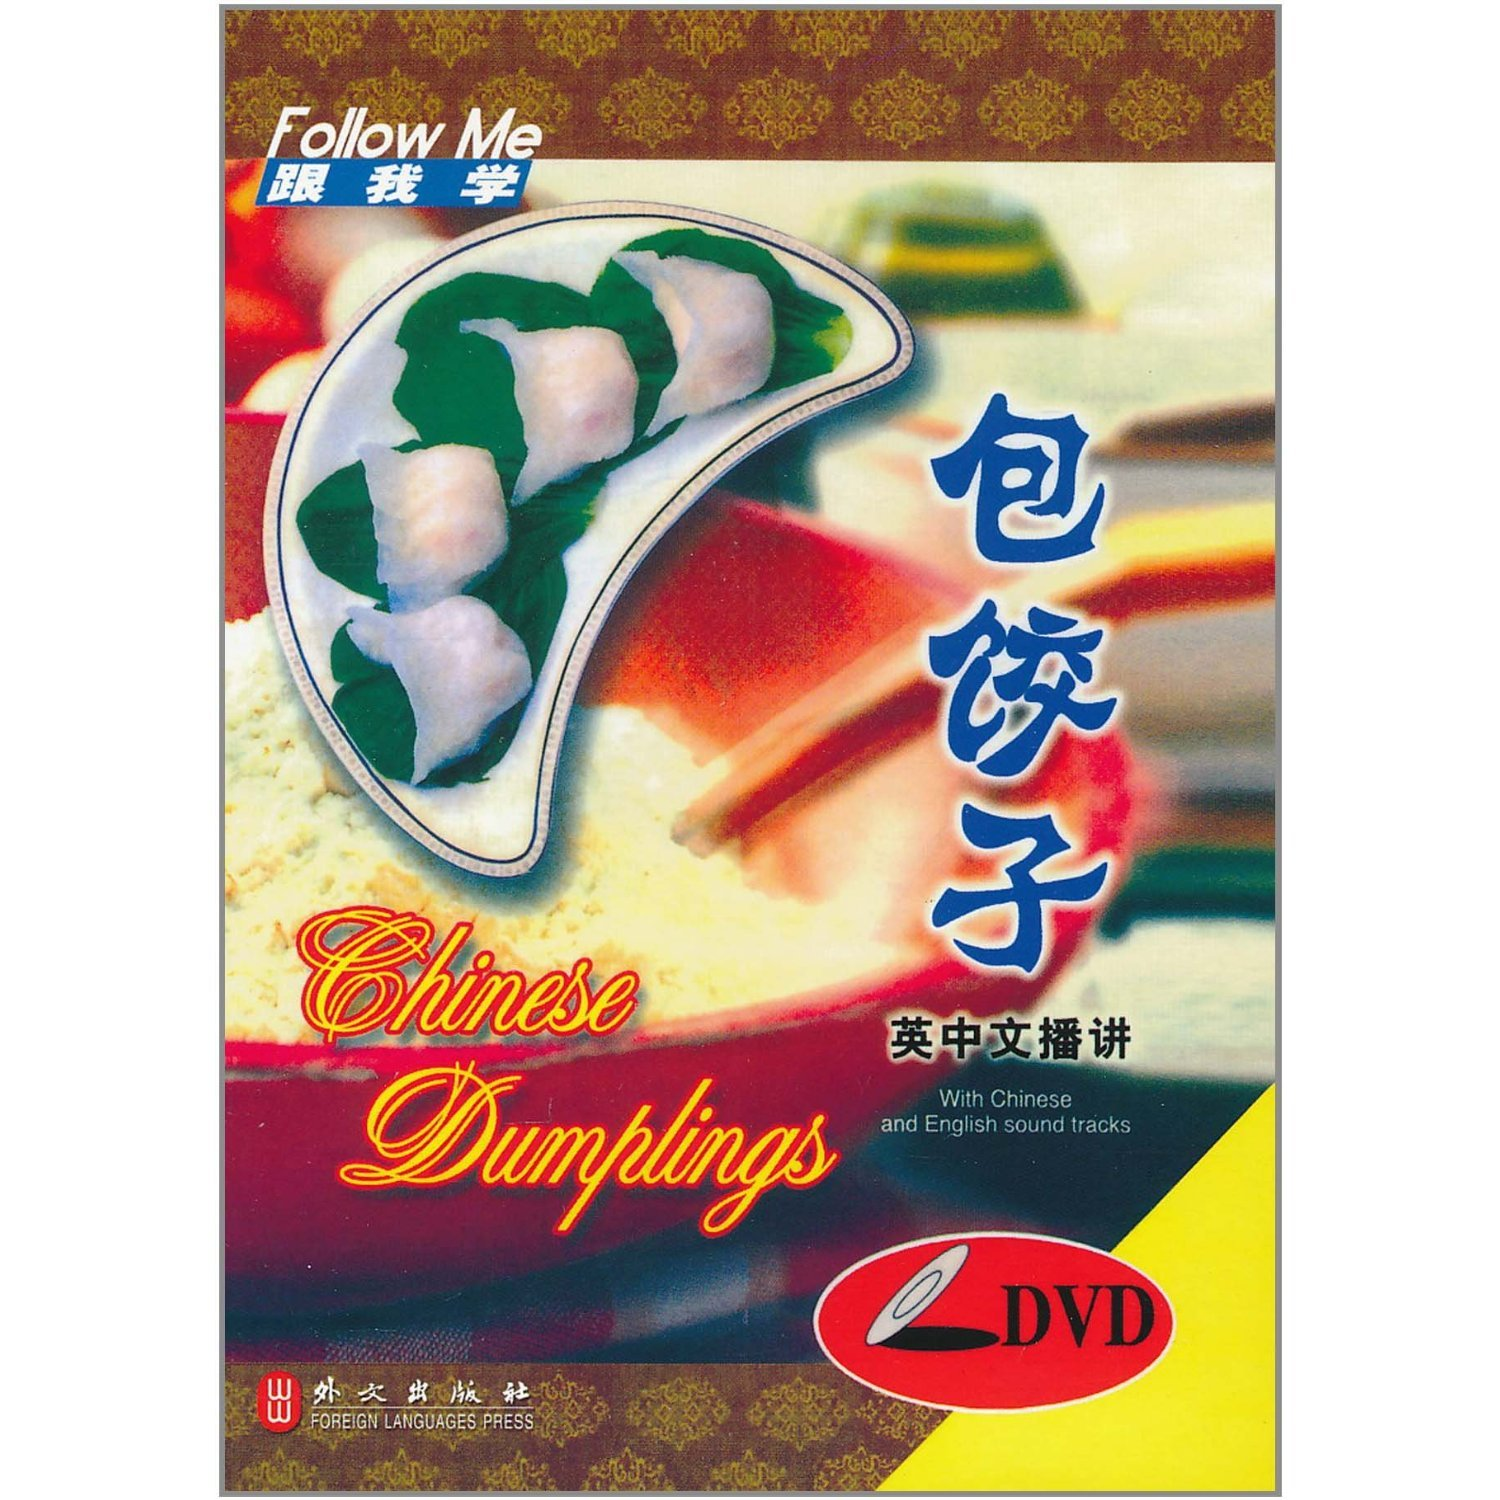 Chinese Dumplings (English and Chinese Edition) by foreign language Press